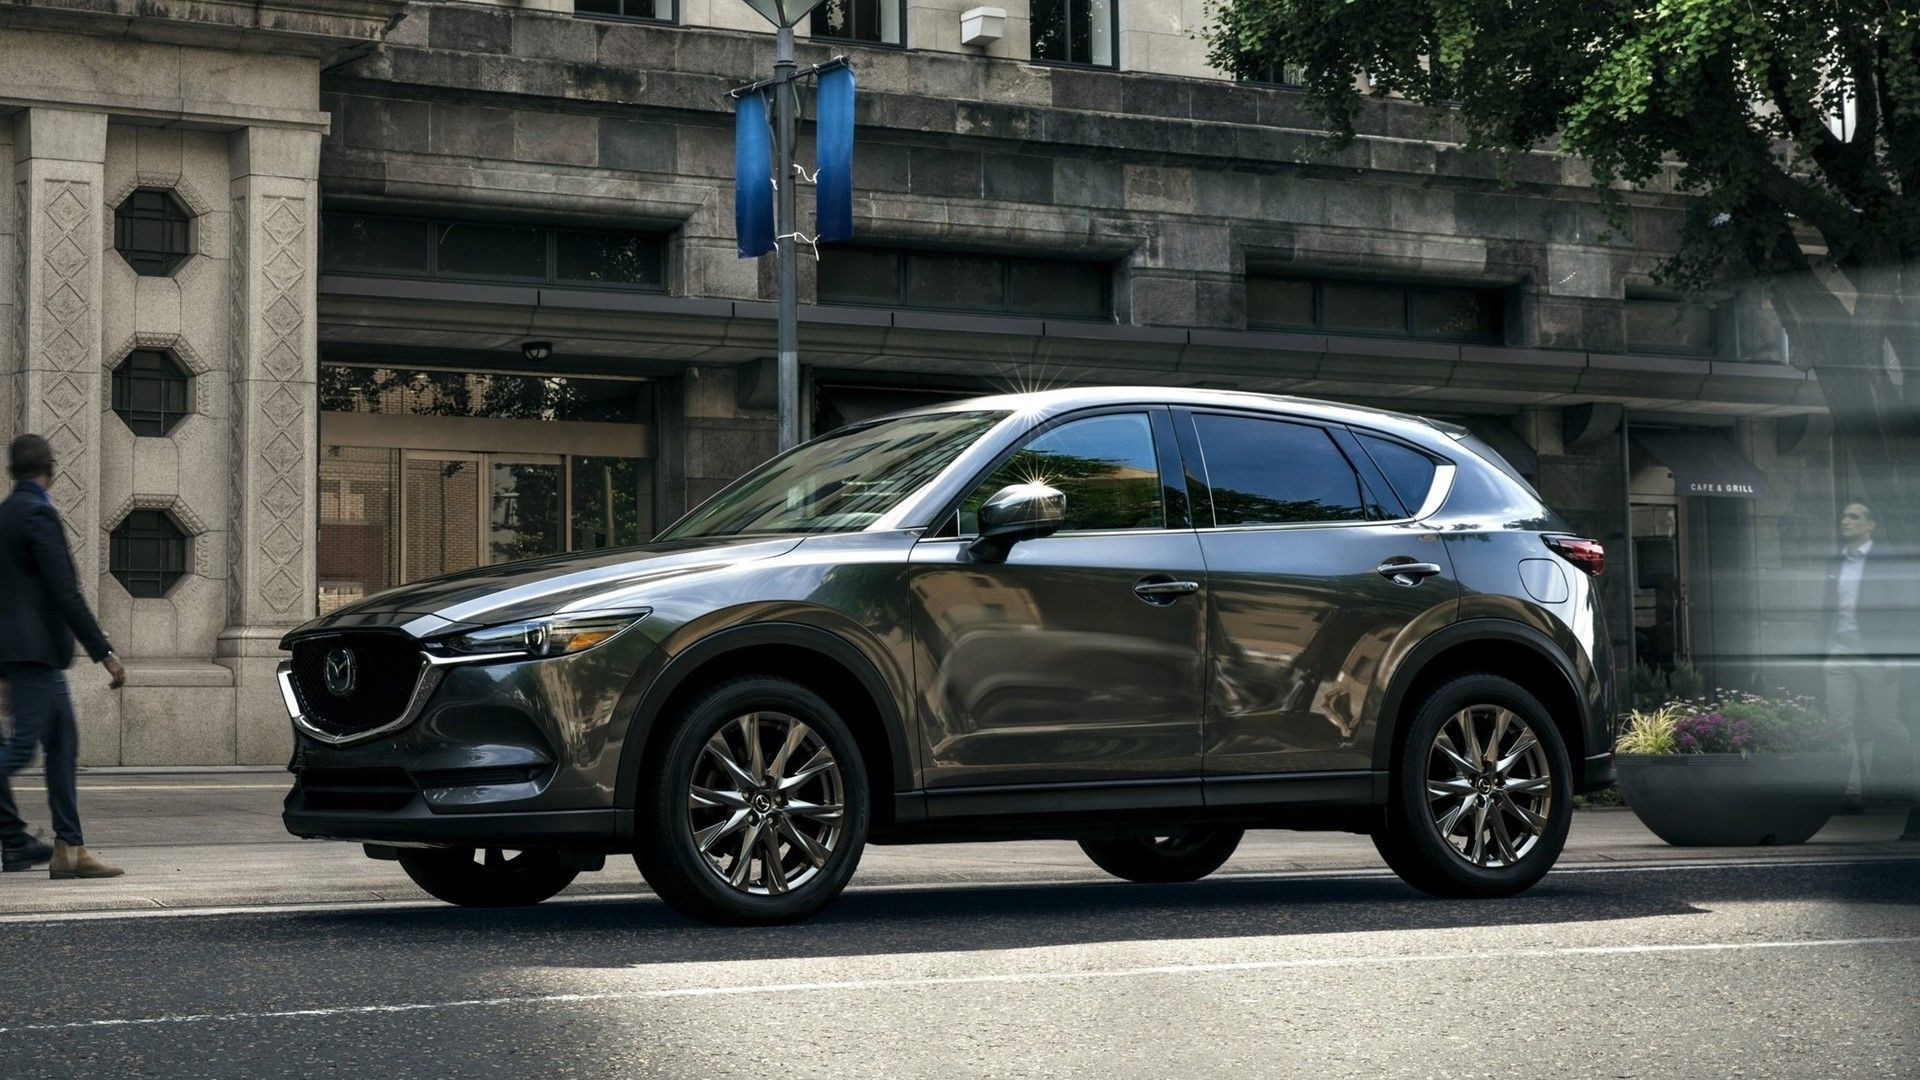 The 2019 Mazda CX-5 Has Innovative Safety and Mechanical Technologies